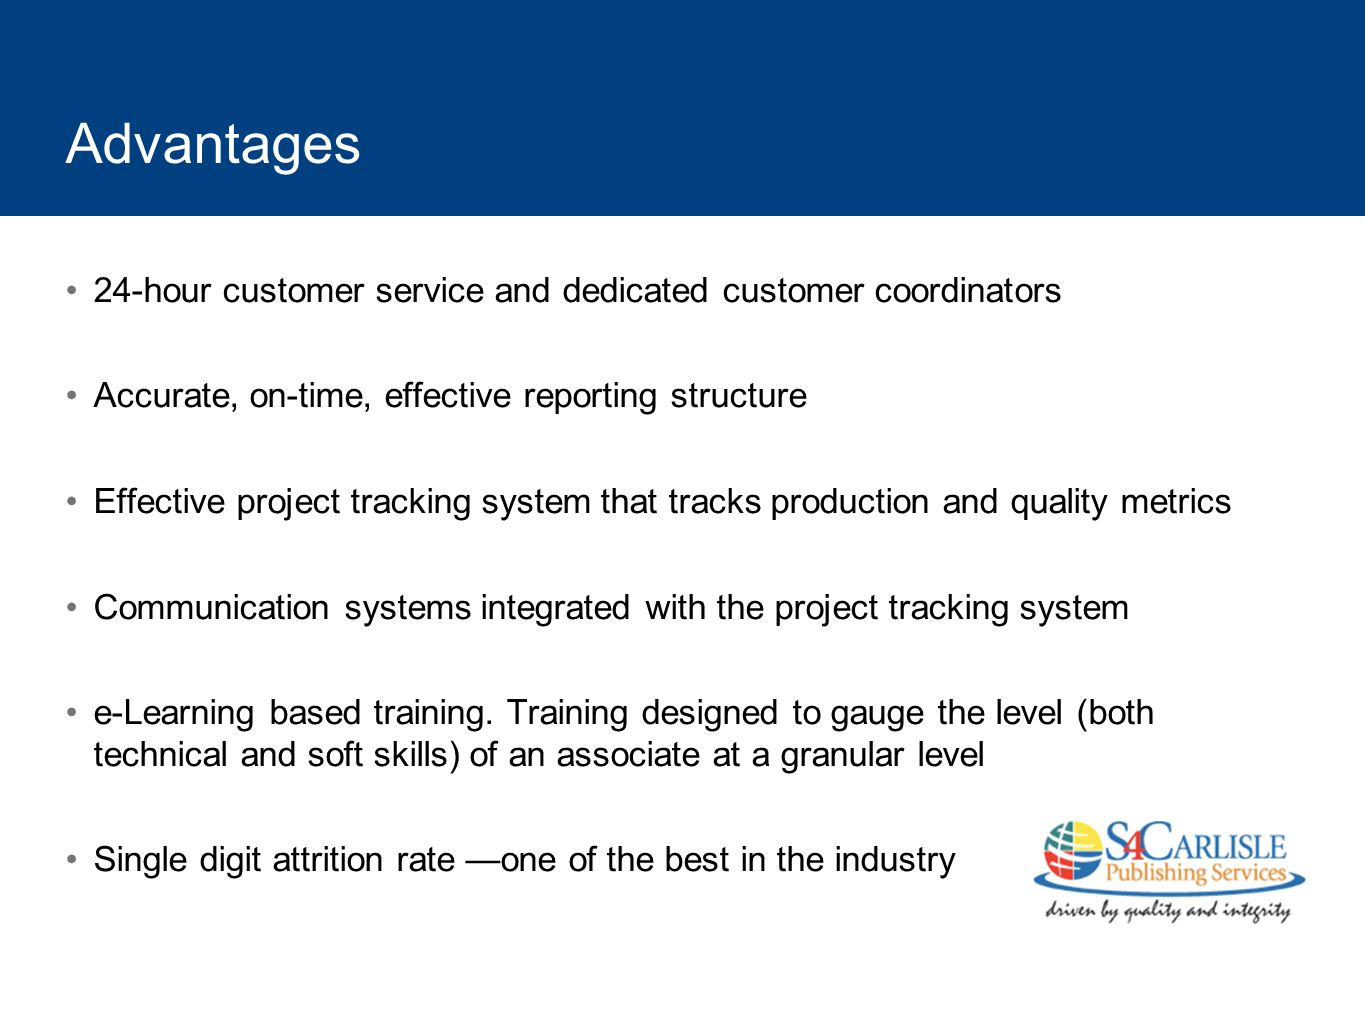 Advantages 24-hour customer service and dedicated customer coordinators. Accurate, on-time, effective reporting structure.